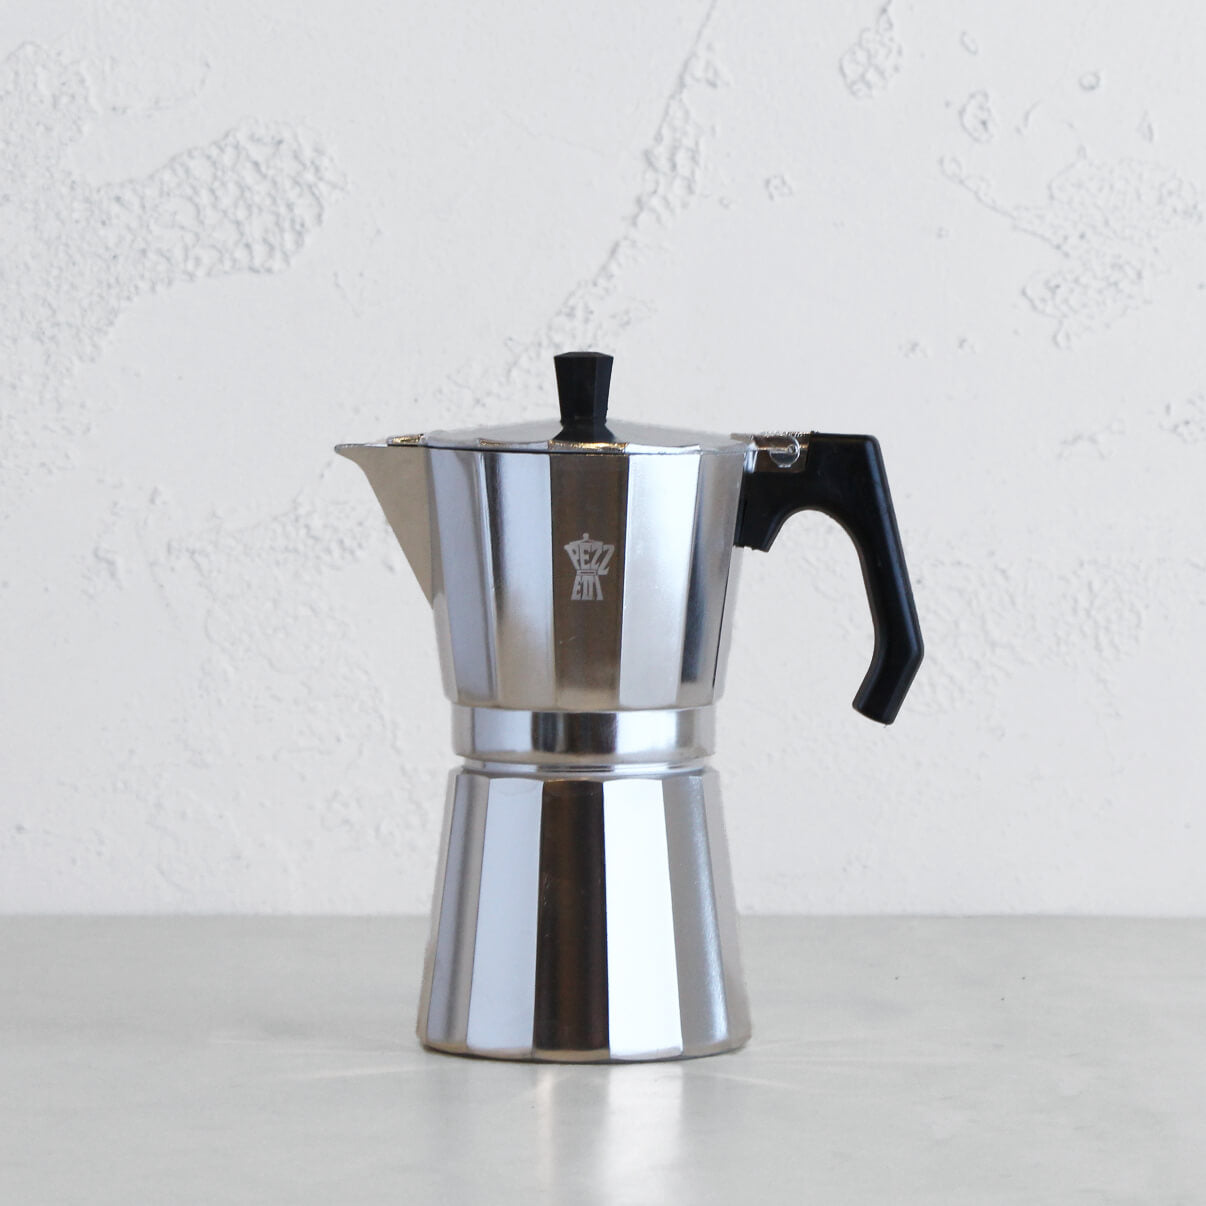 PEZZETTI LUXEXPRESS ITALIAN COFFEE MAKER  |  9 CUP  |  STEEL